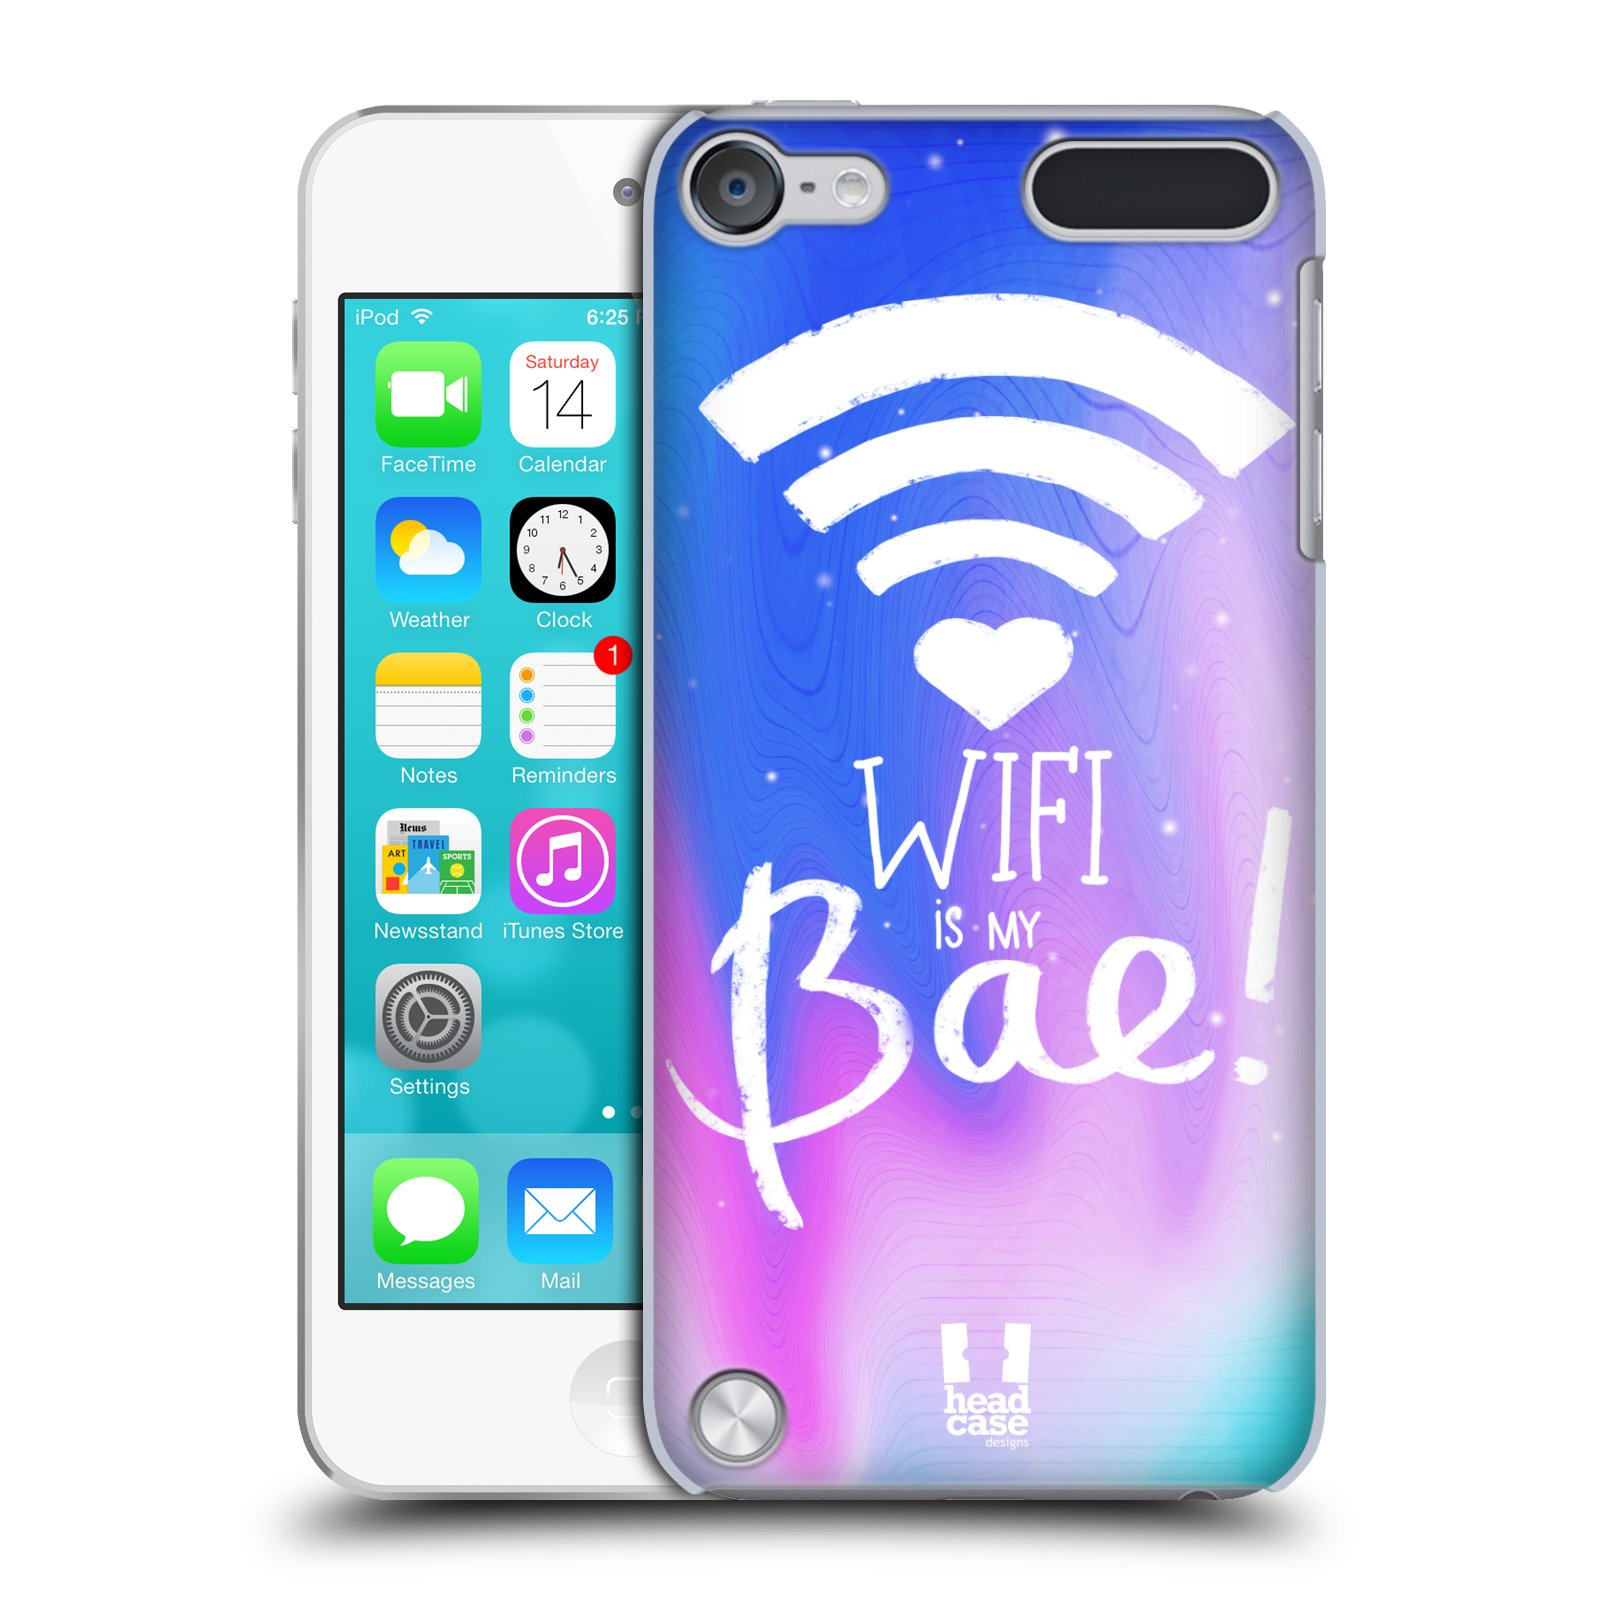 head case designs wifi love hard back case for apple ipod. Black Bedroom Furniture Sets. Home Design Ideas